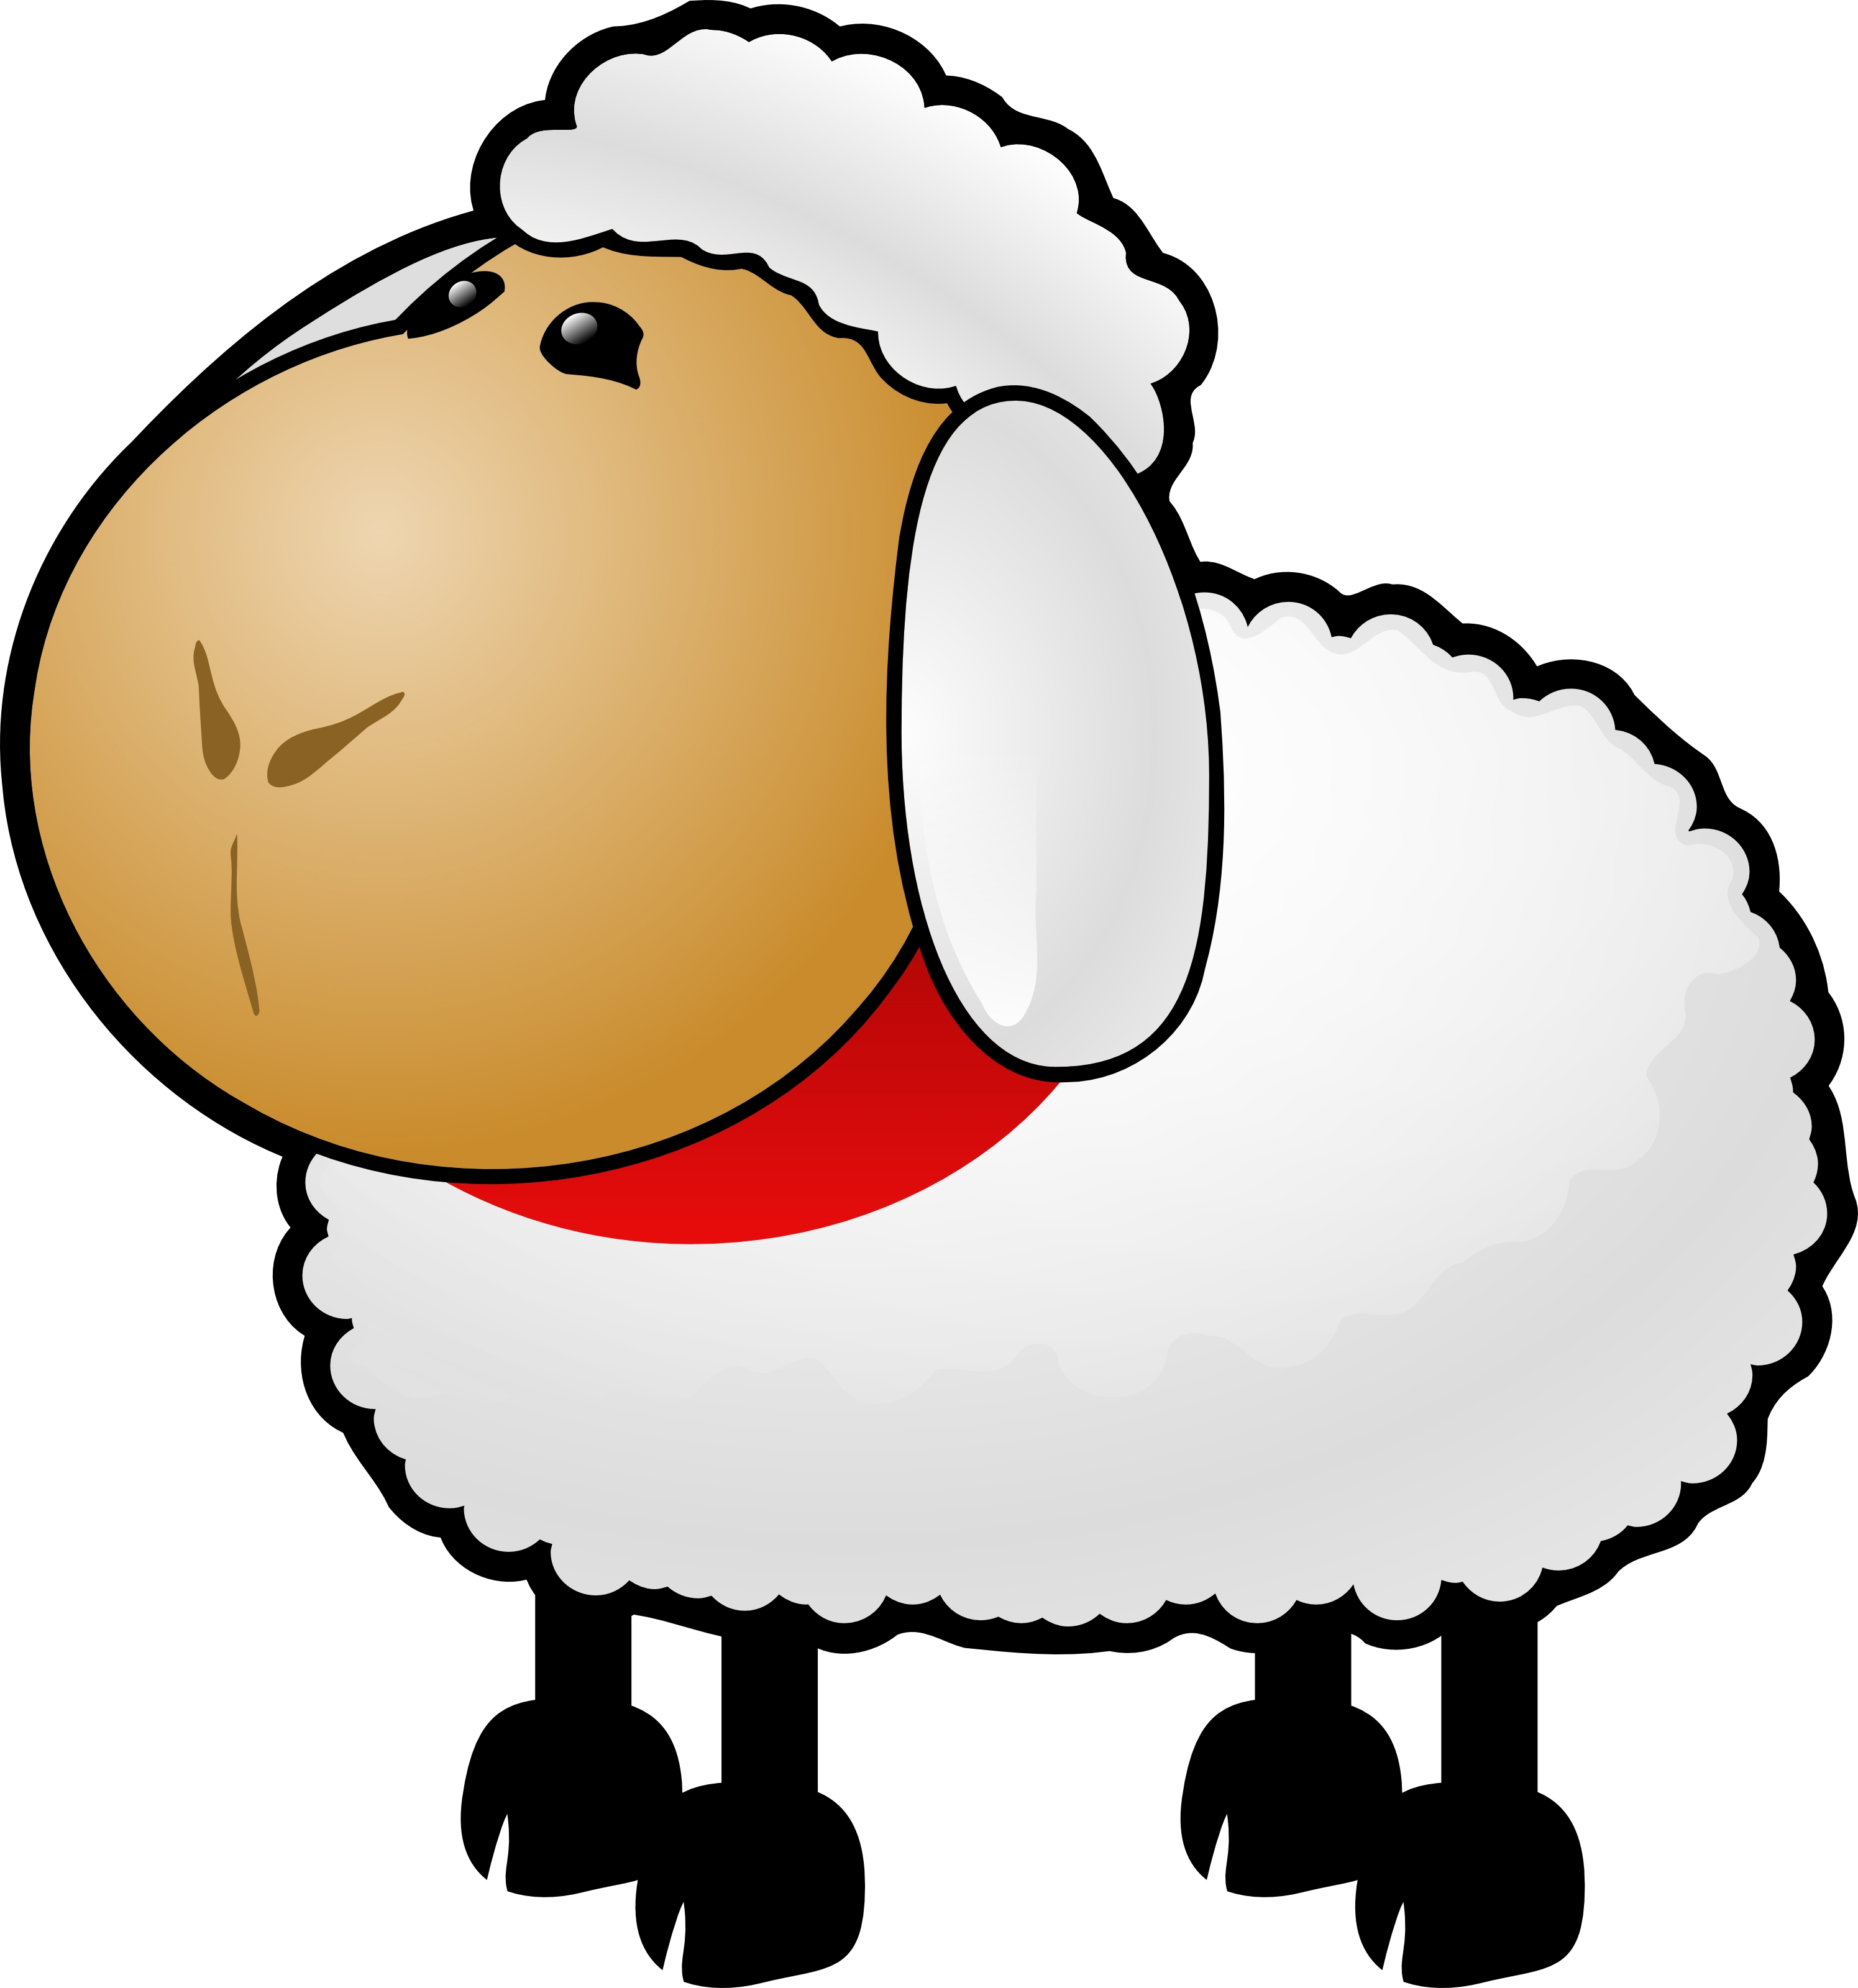 Awesome lamb gallery digital. 1 clipart sheep